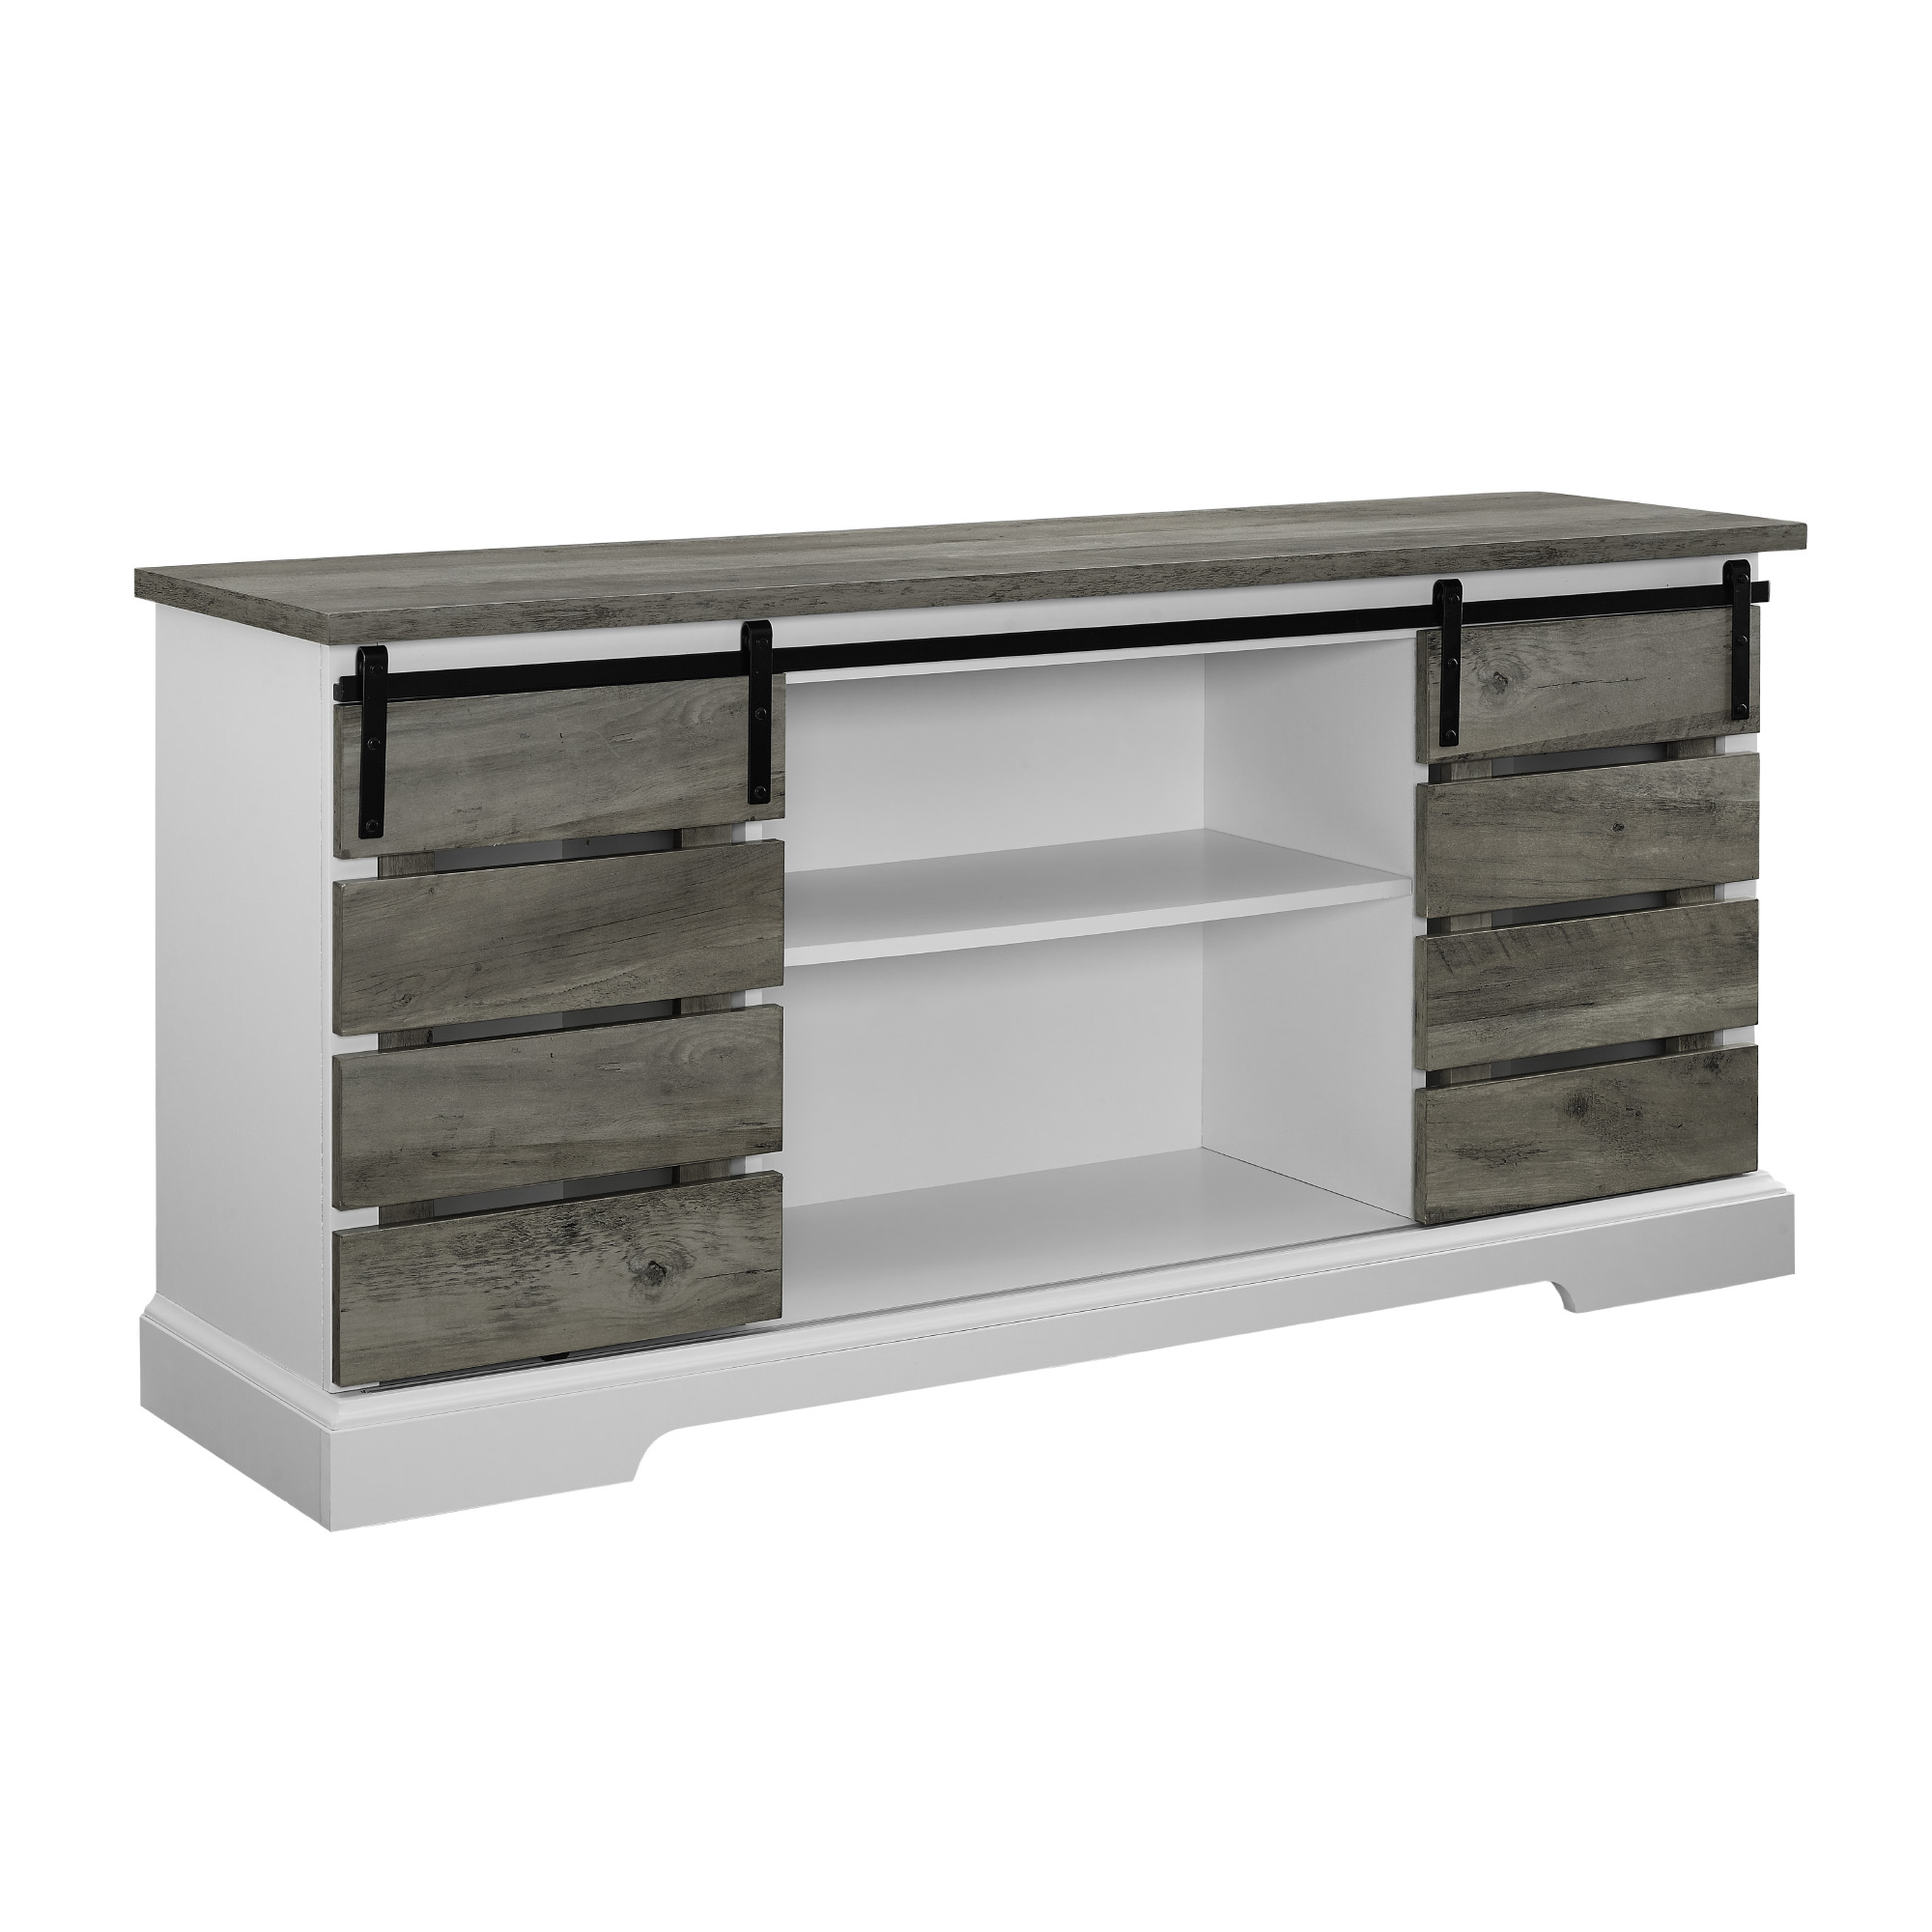 Woven Paths Sliding Slat Door Tv Stand For Tv's Up To 64 Throughout Woven Paths Barn Door Tv Stands In Multiple Finishes (View 1 of 20)